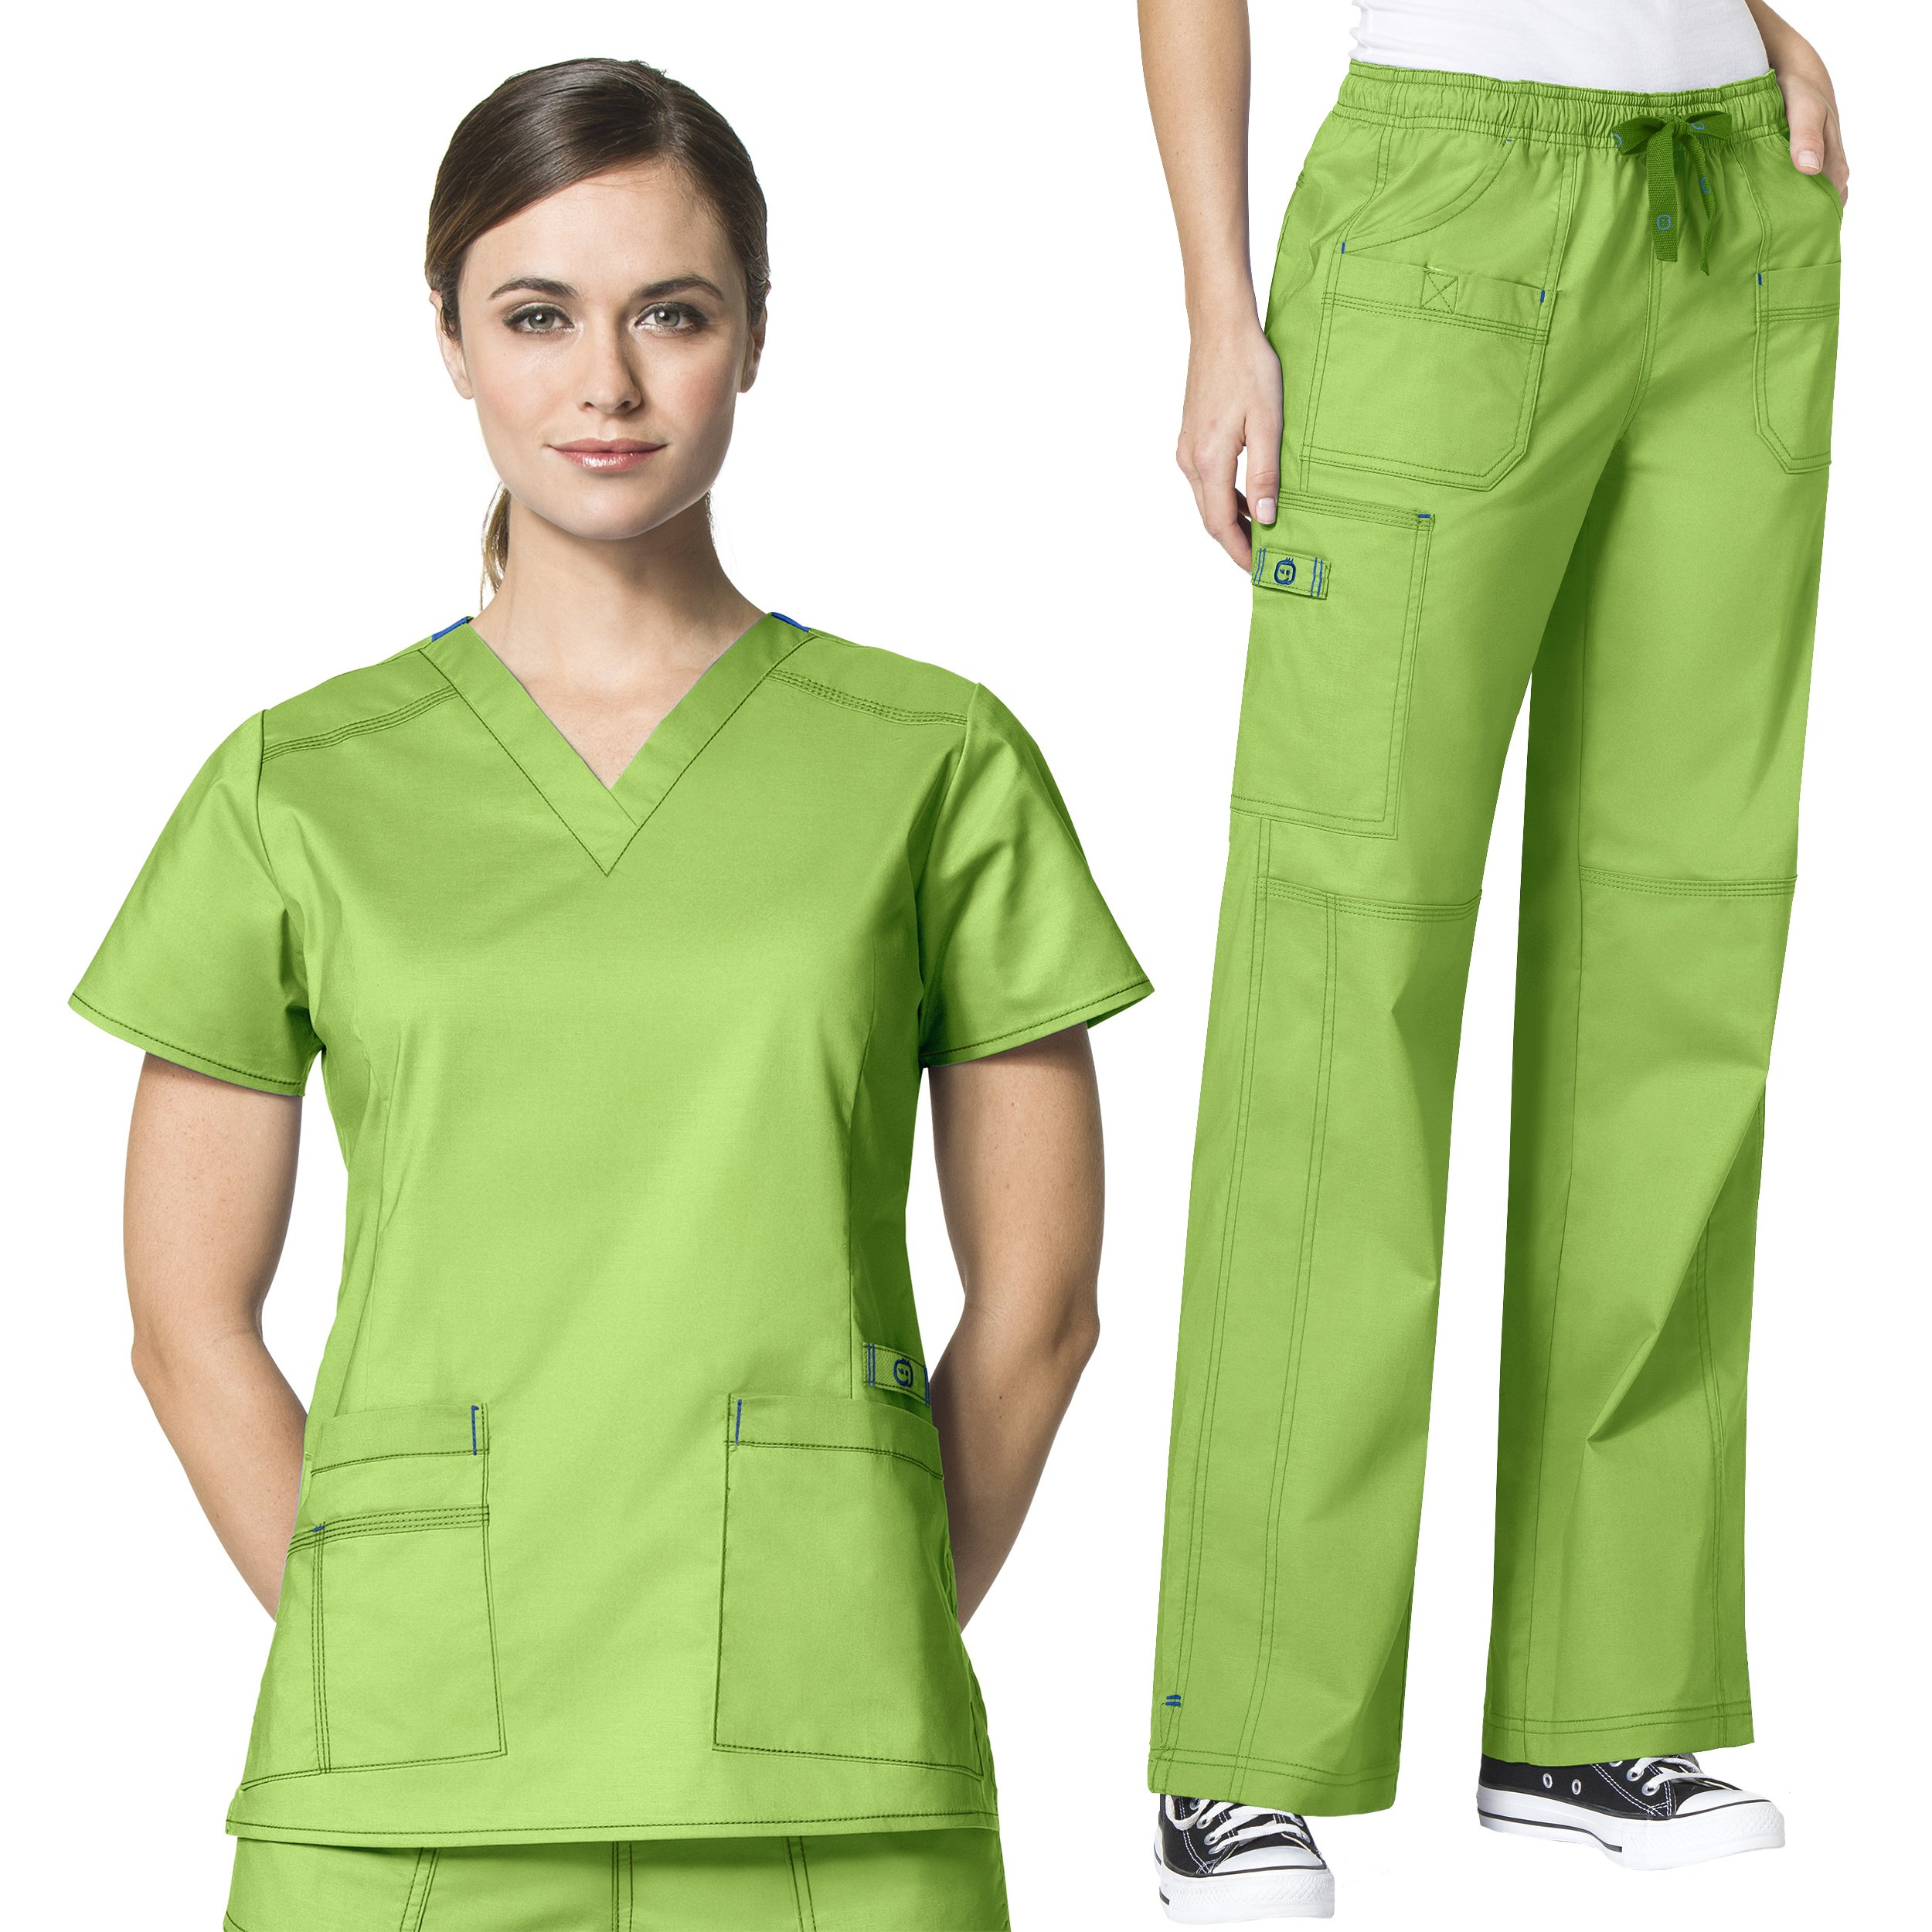 WonderWink Women's Scrubs Flex V-Neck Darted Top & Multi Pocket Cargo Pant Set + Free Gift